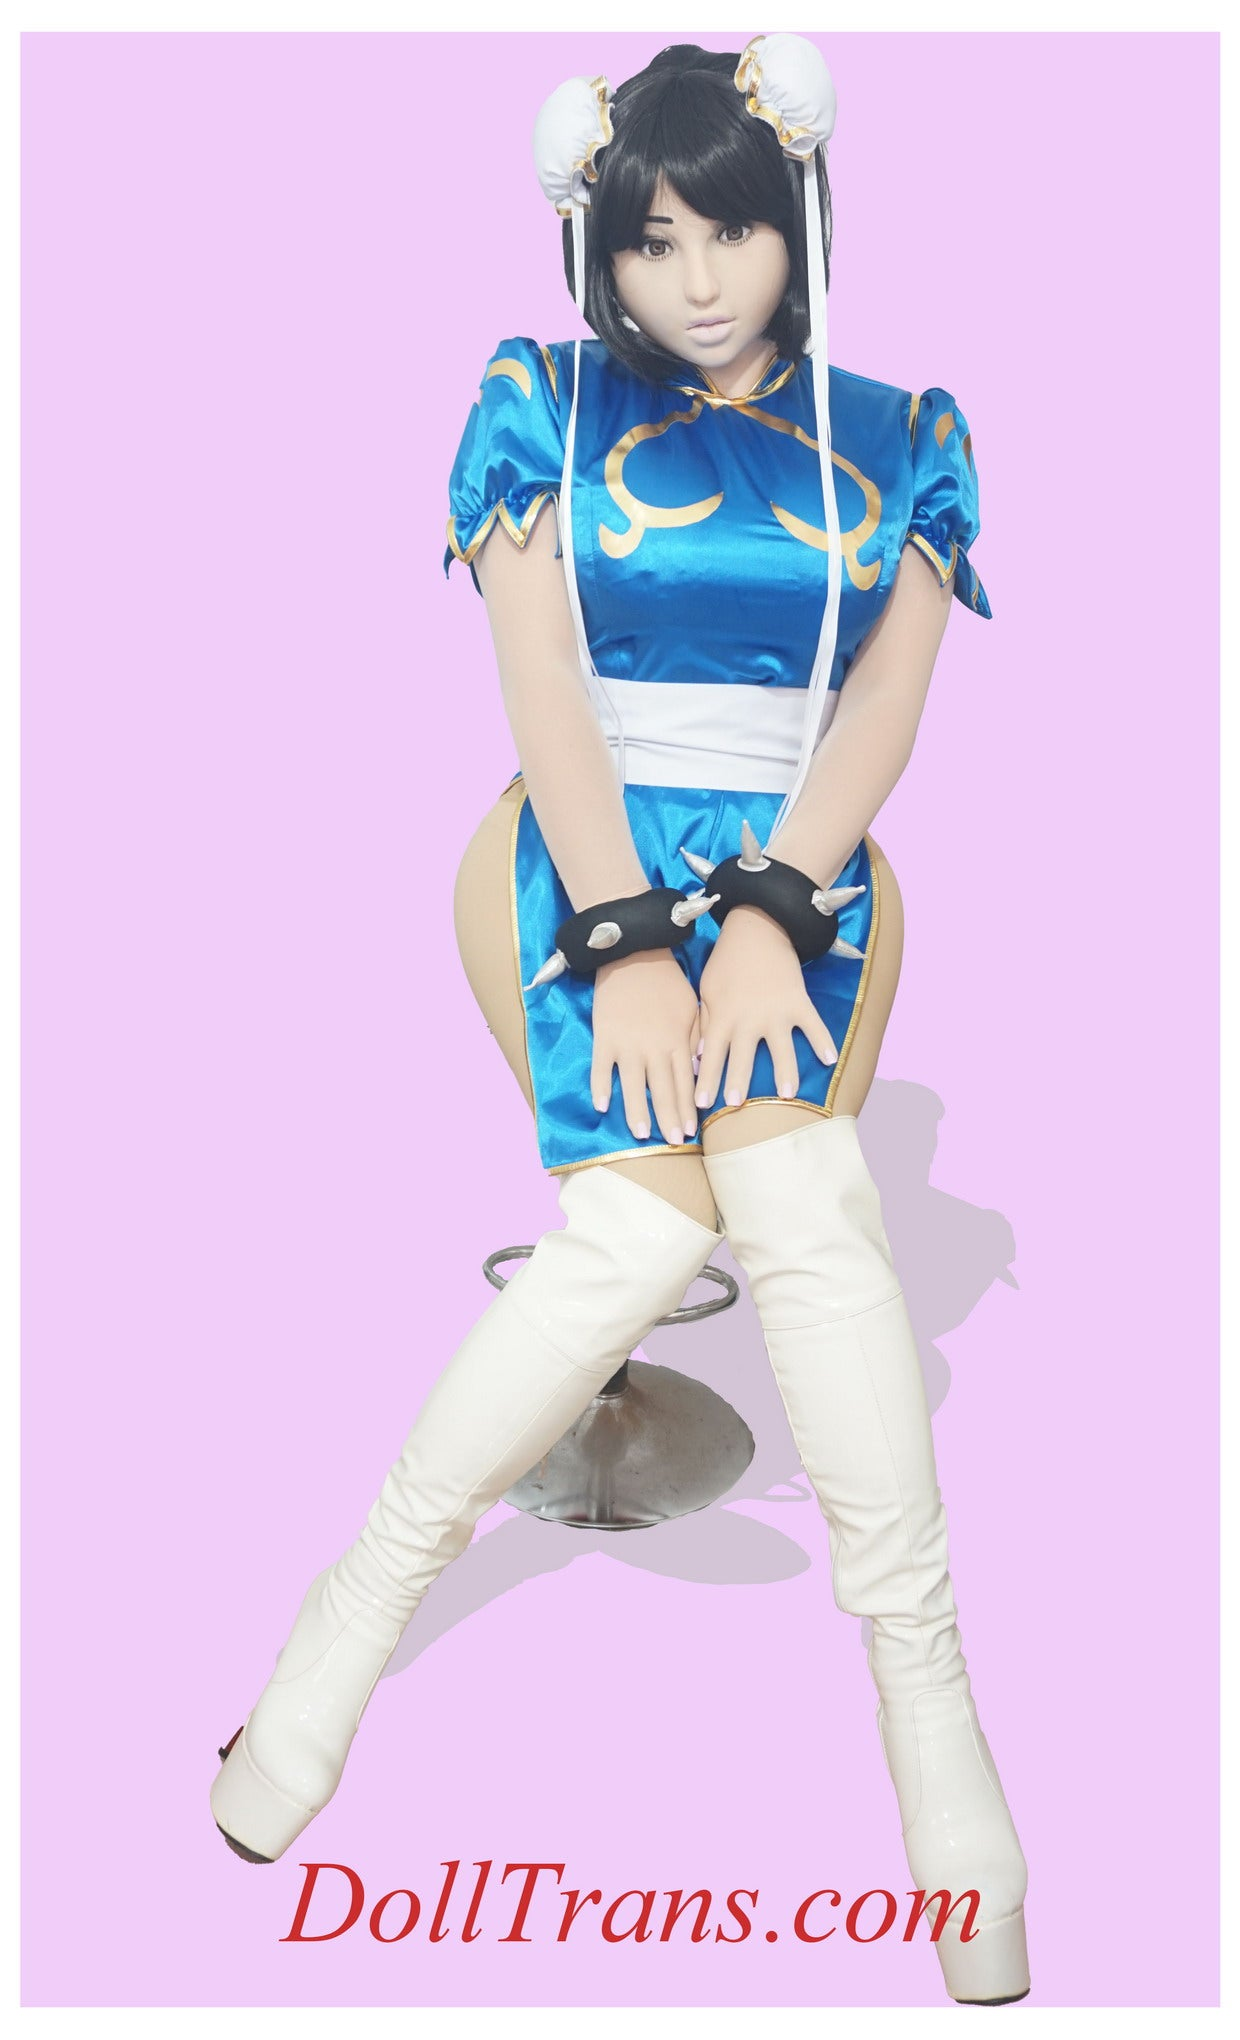 Lovely Chun-Li cosplay with jiggling F-cup boobs style